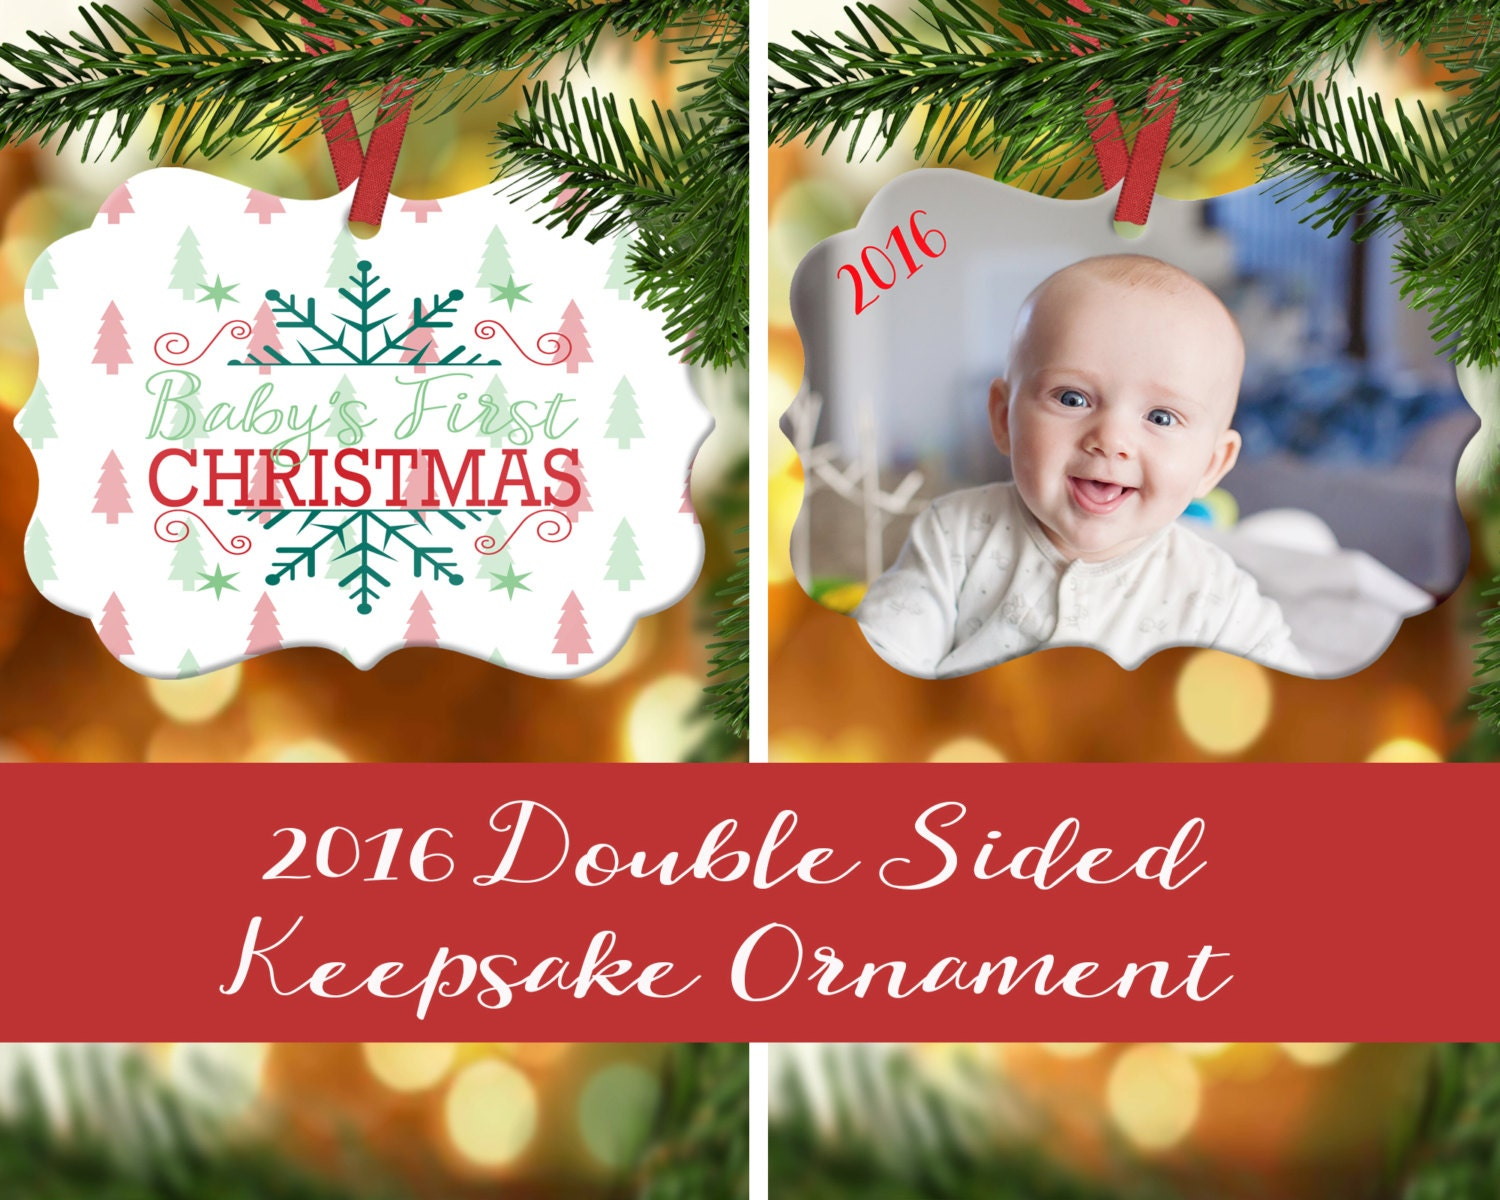 New baby christmas ornament - Baby S First Christmas Ornament Baby S 1st Chrismas Photo Ornament Family S First Christmas New Mom Gift New Baby Christmas Gift